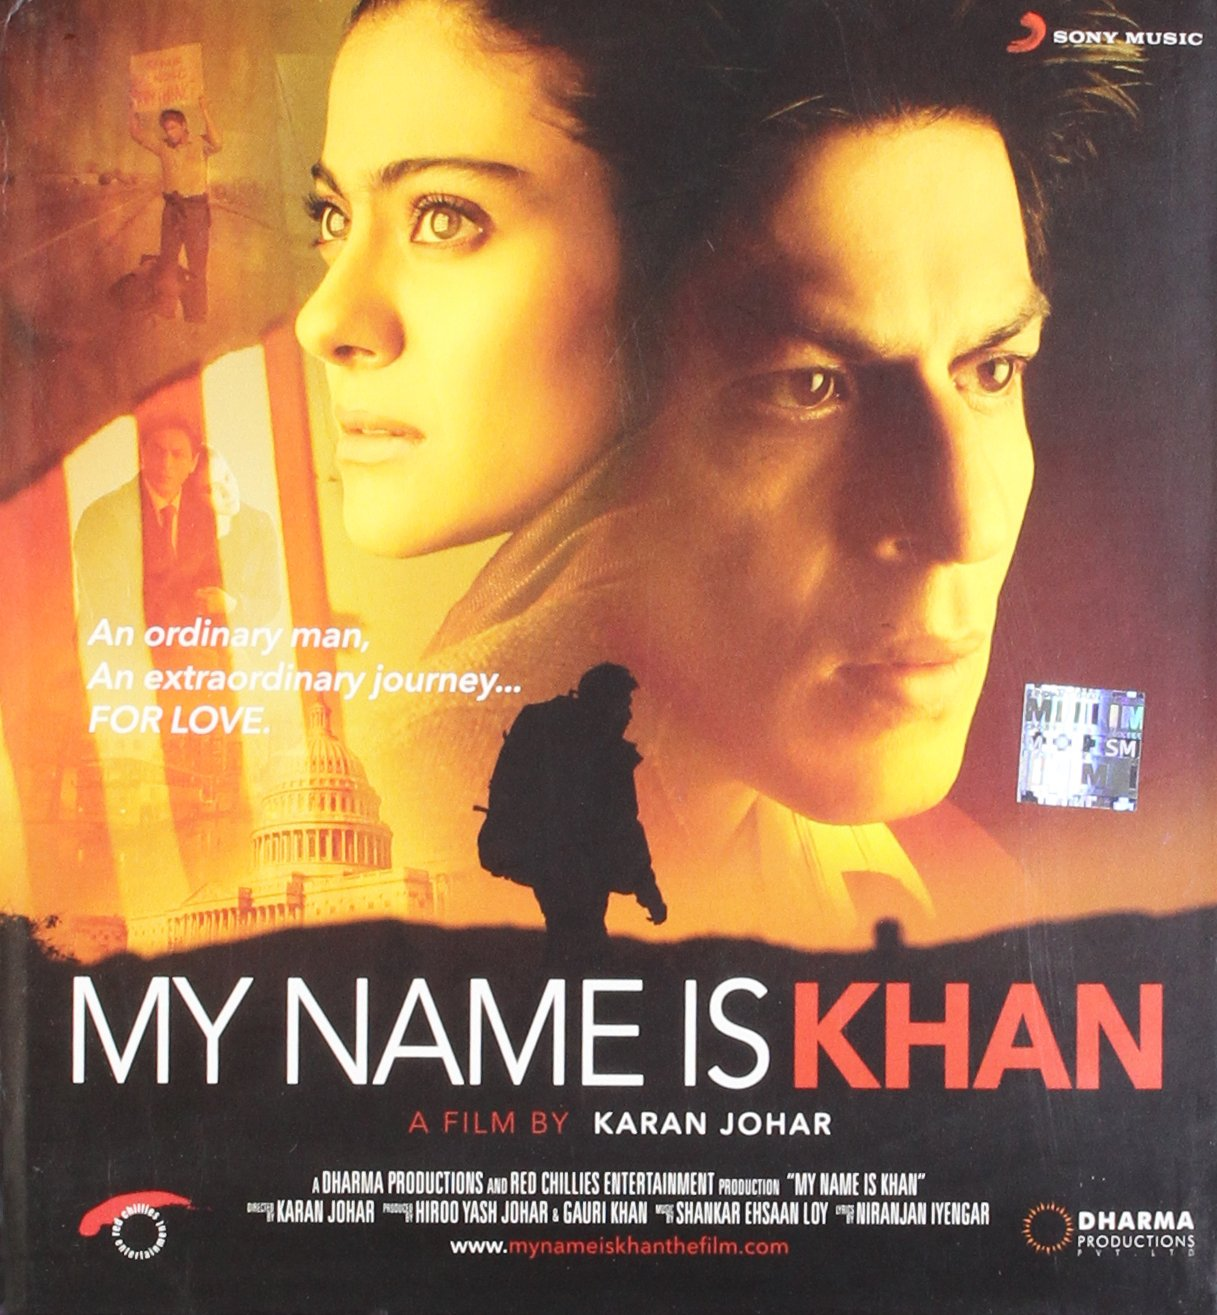 Buy My Name is Khan Online at Low Prices in India | Amazon Music Store -  Amazon.in